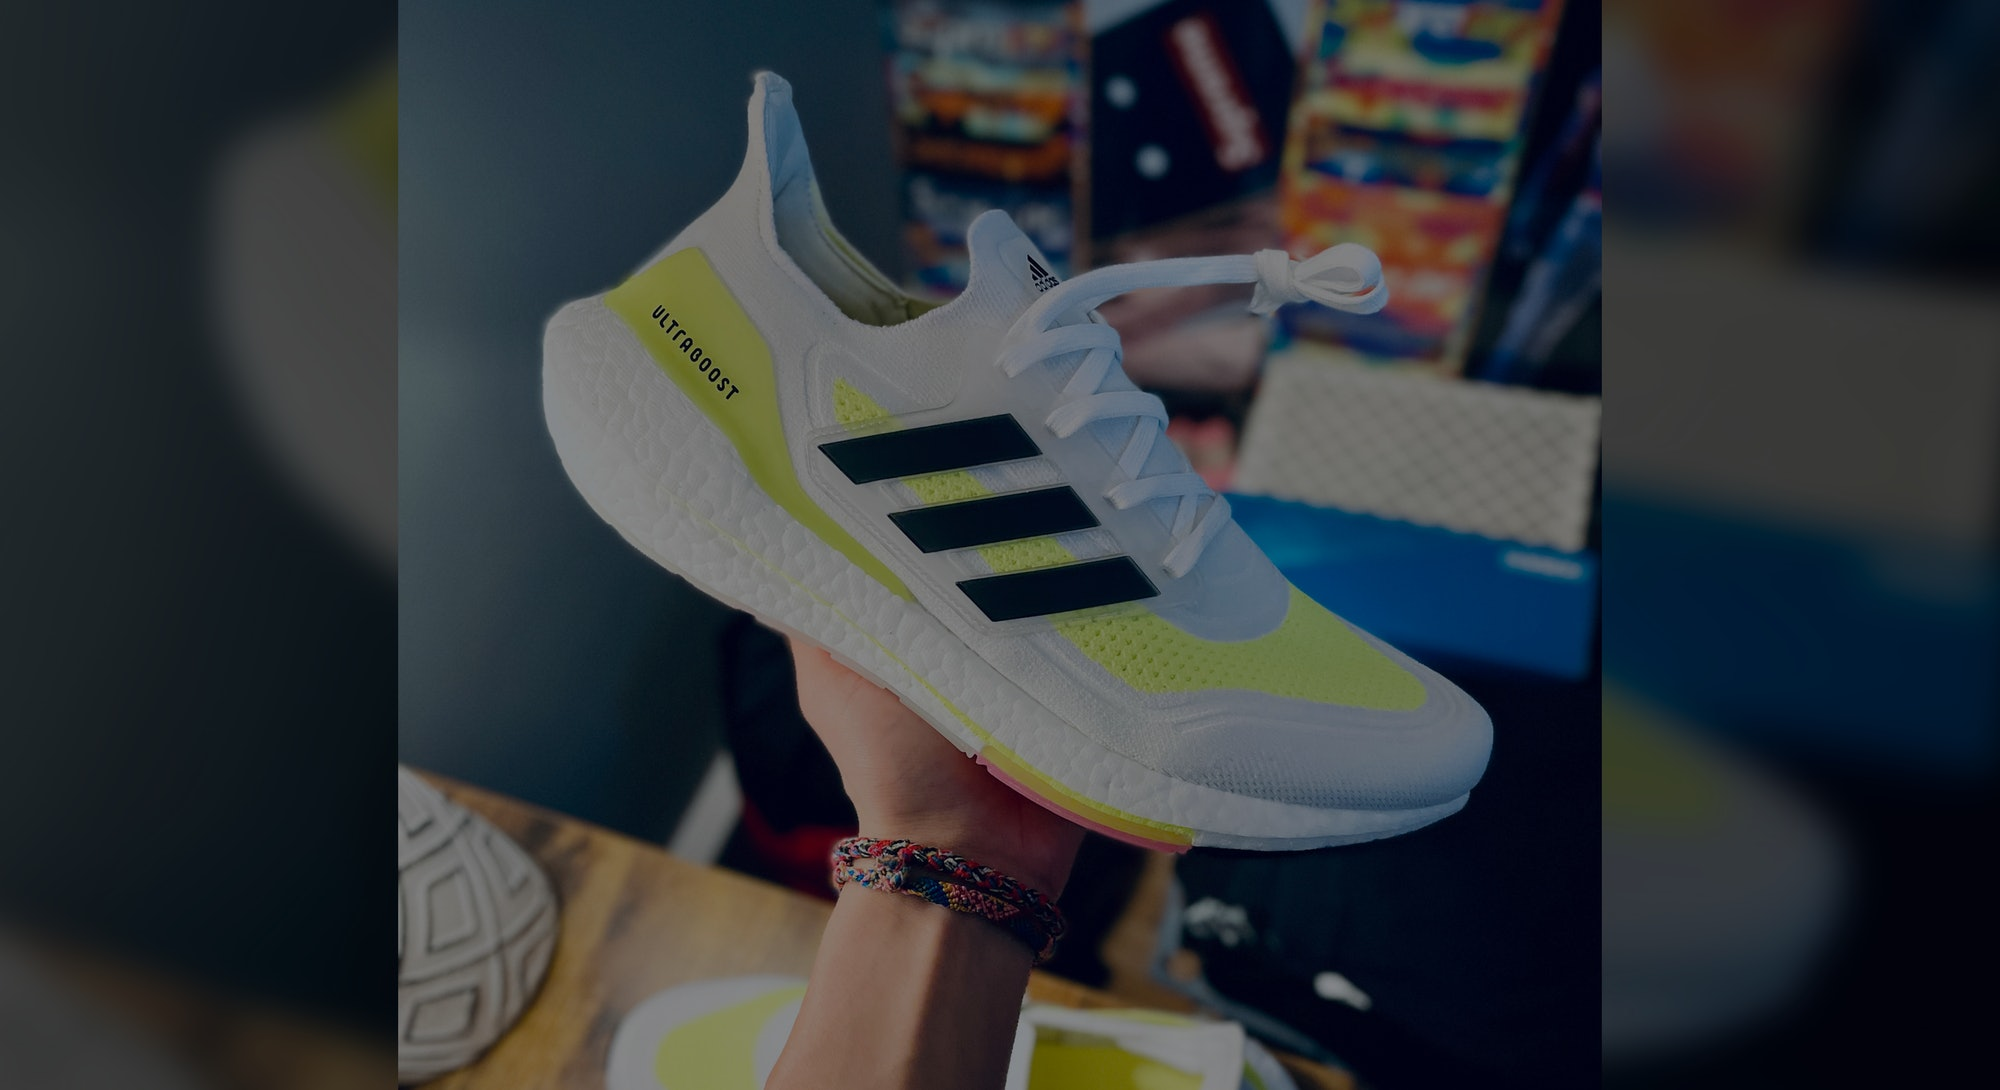 Adidas UltraBoost 21 review.